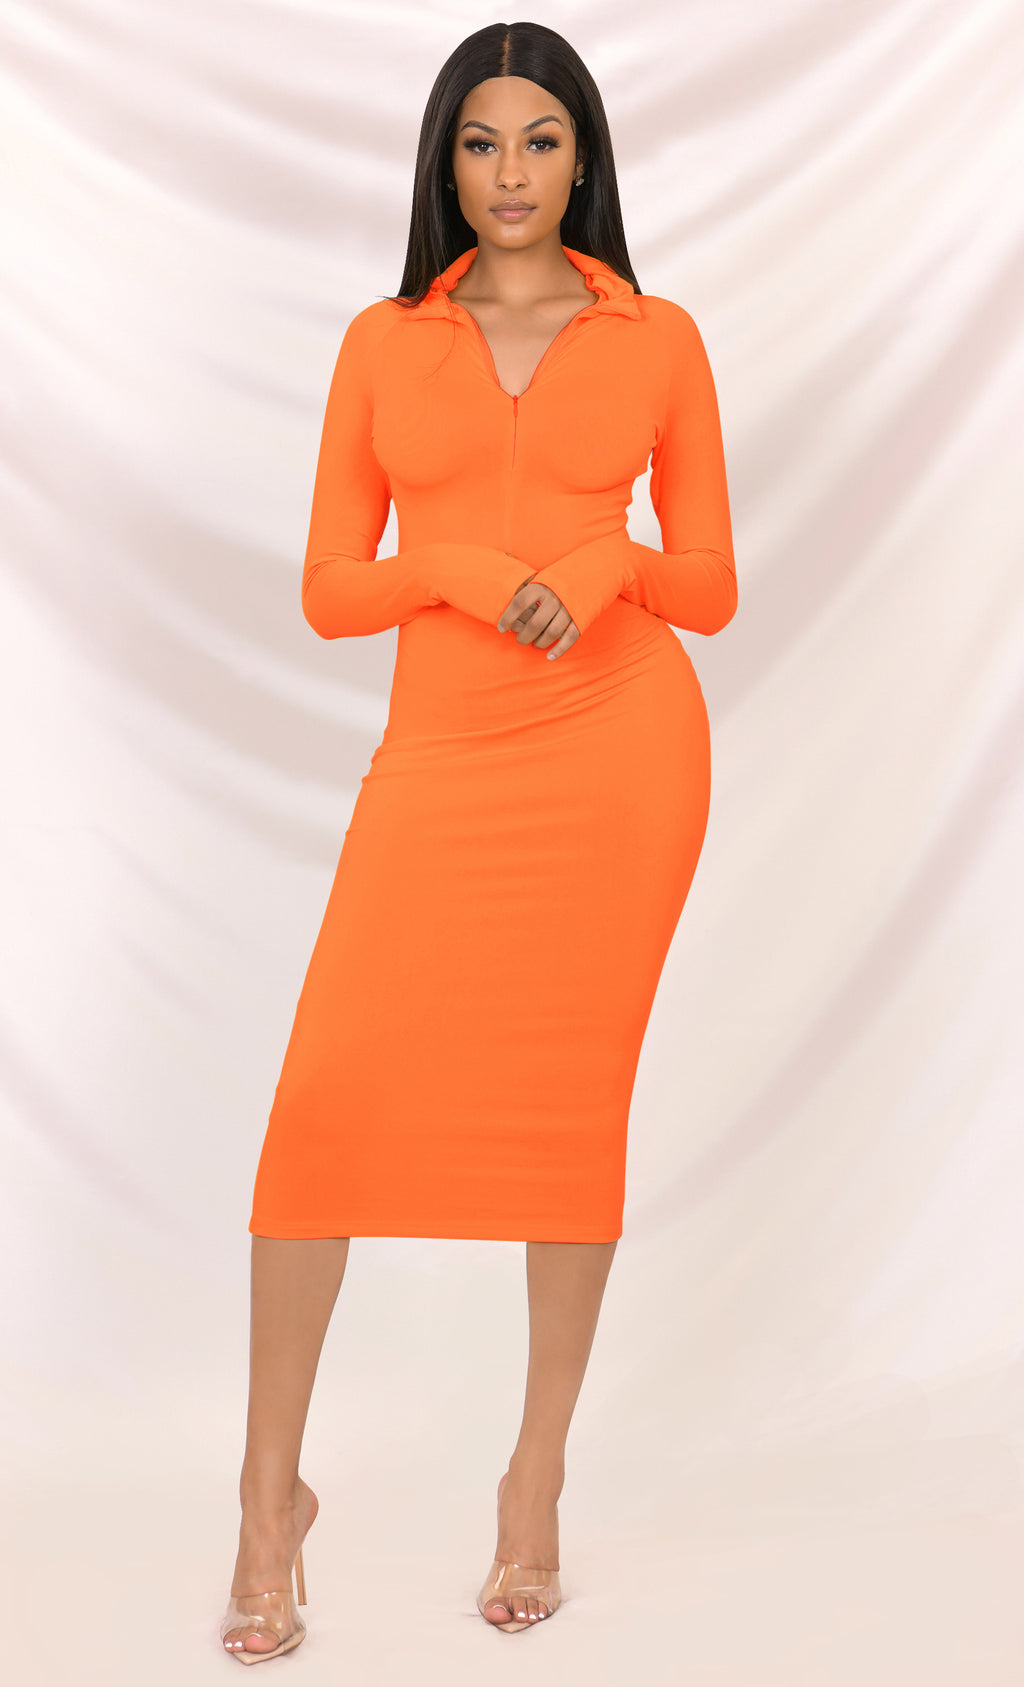 Press To Play Orange Long Sleeve Mock Neck Zip Front Bodycon Midi Dress - 3 Colors Available